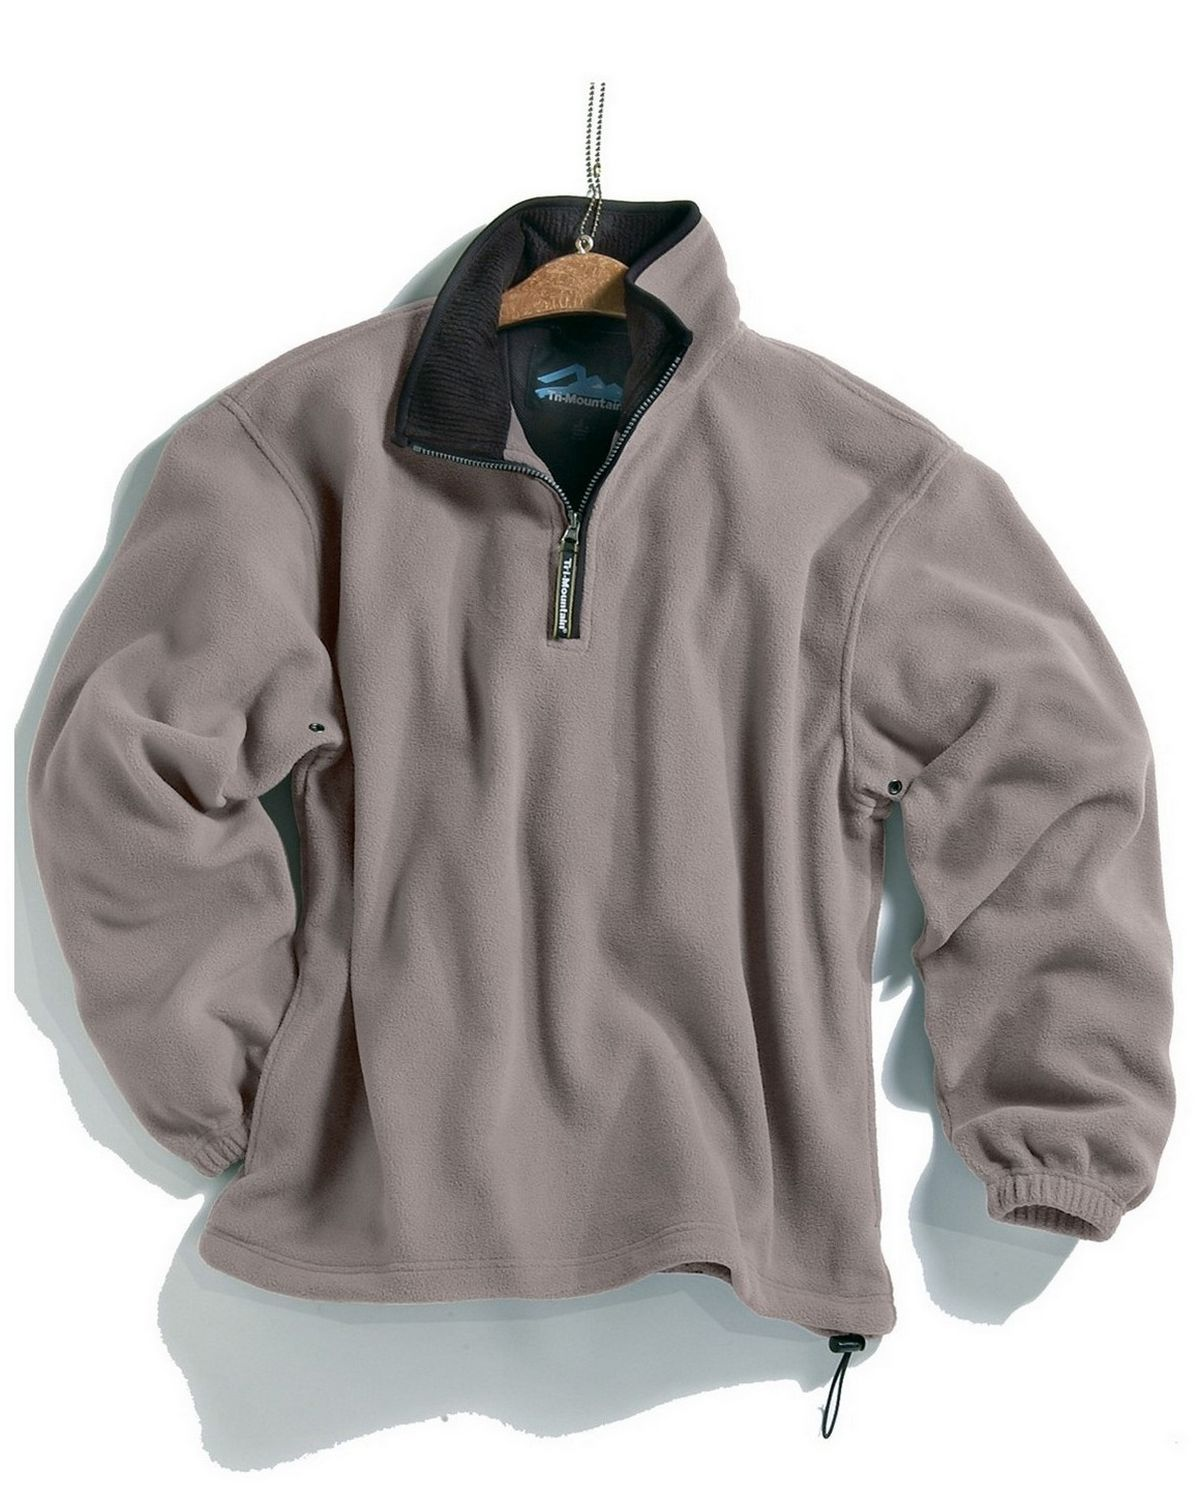 Tri-Mountain 7100 Escape pullover. - Heather Gray / Black - S 7100